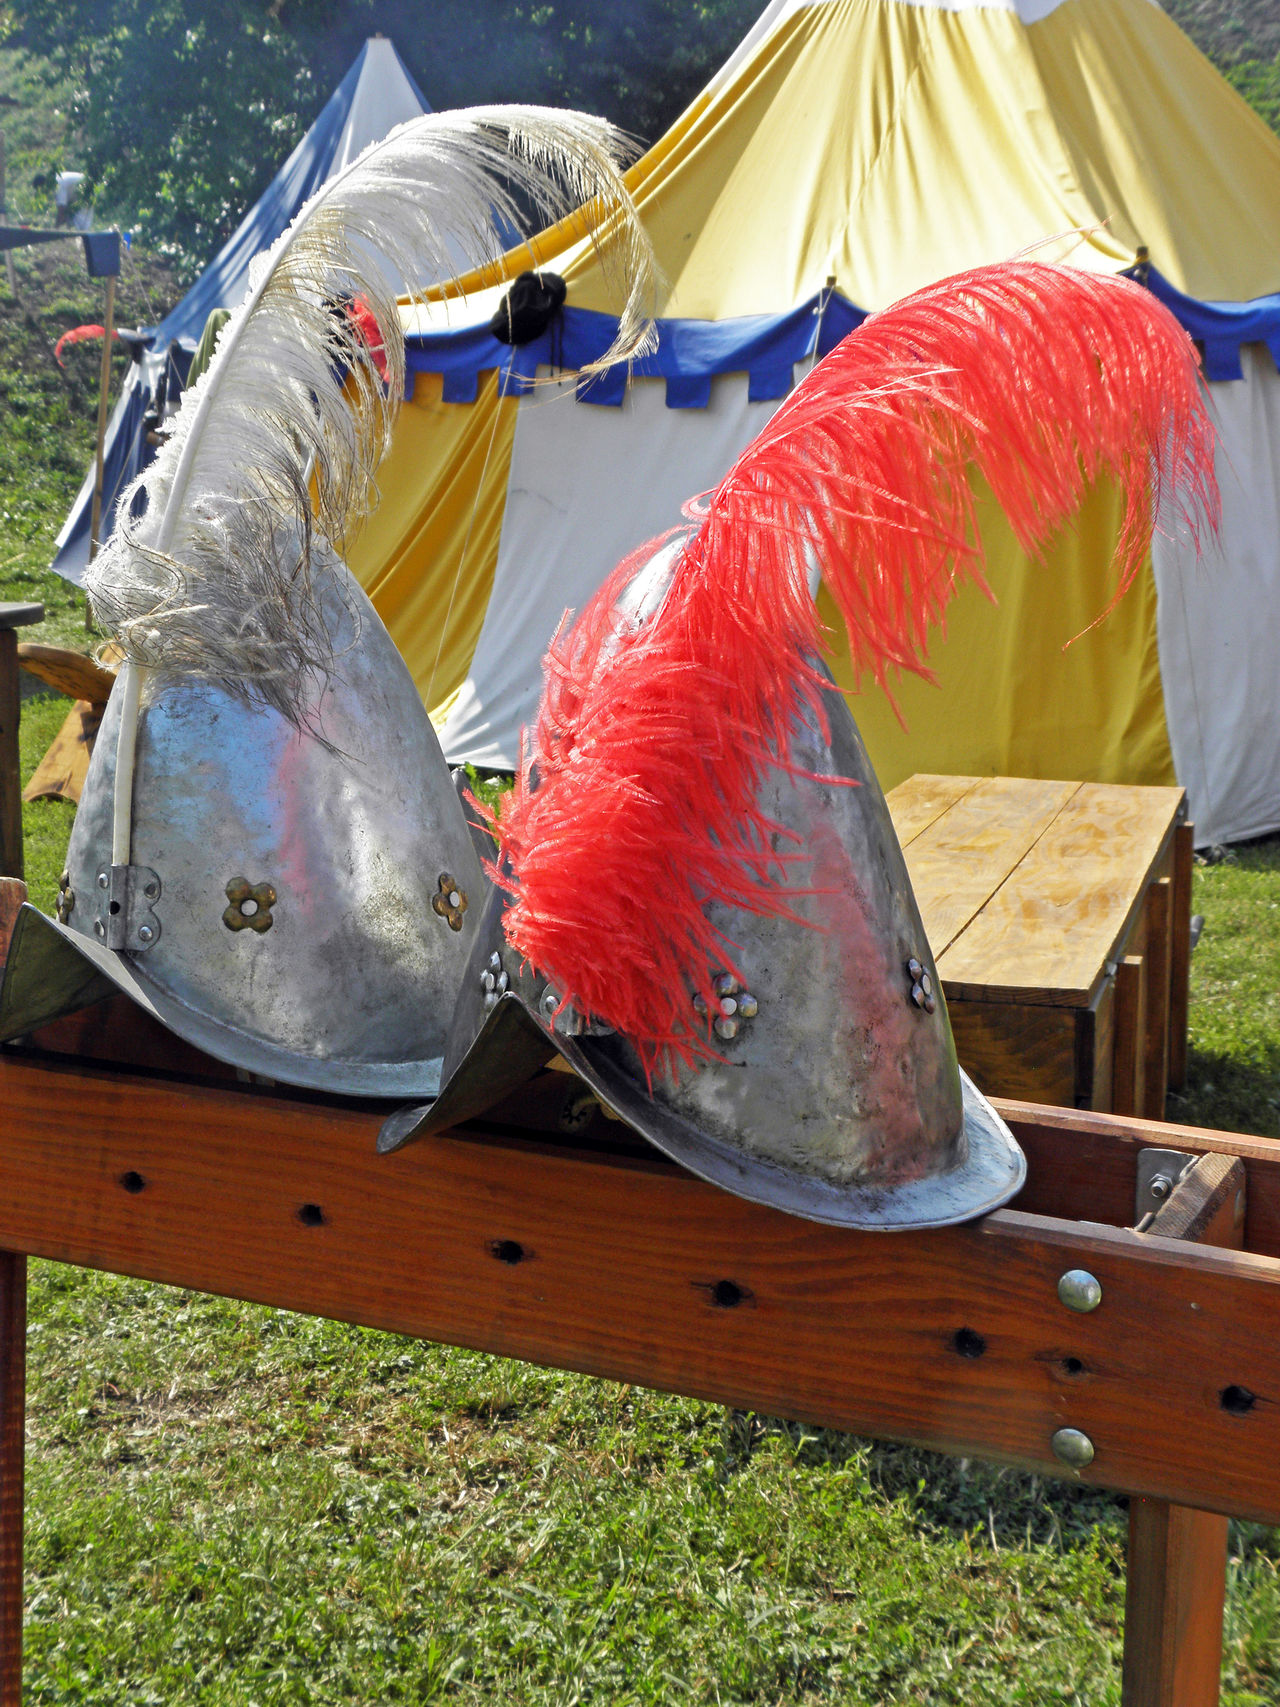 Renaissance Festival,Koprivnica,Croatia,Europe, 2016, 45,helmets with feathers Close-up Croatia Day Design Enjoying Entertainment Eu Europe Fair Feathers Helmets Koprivnica Multi Colored Picturesque Renaissance Festival Show Summer